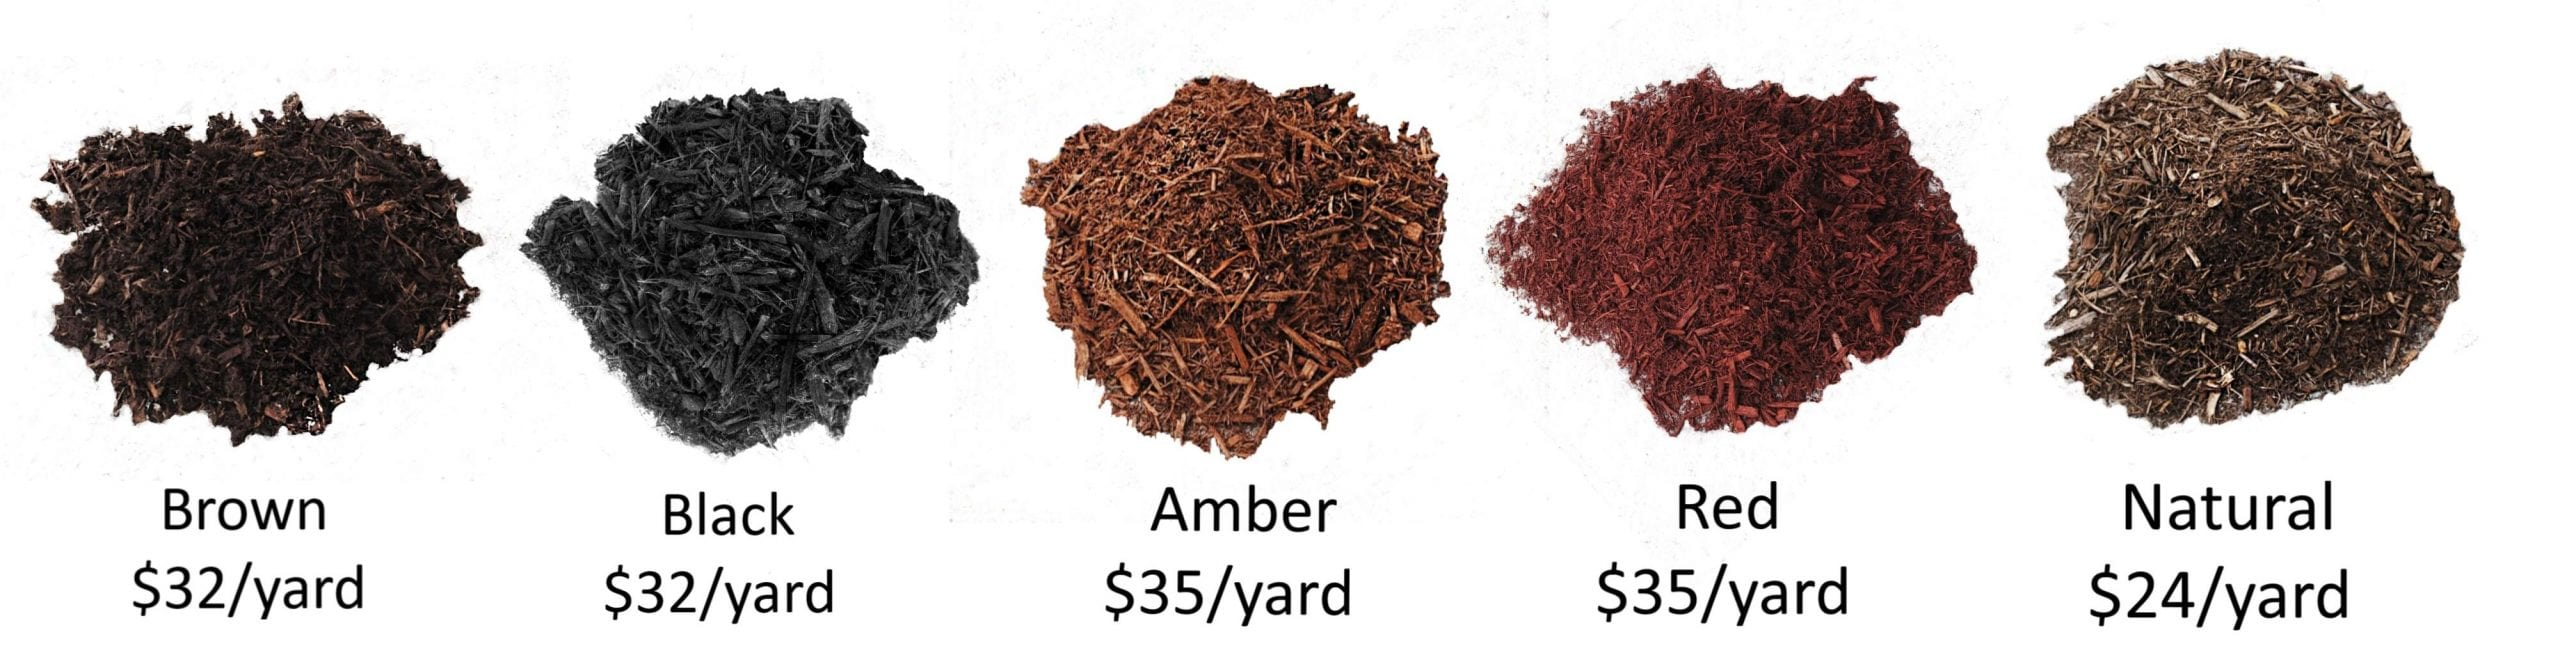 Mulch Color & Prices